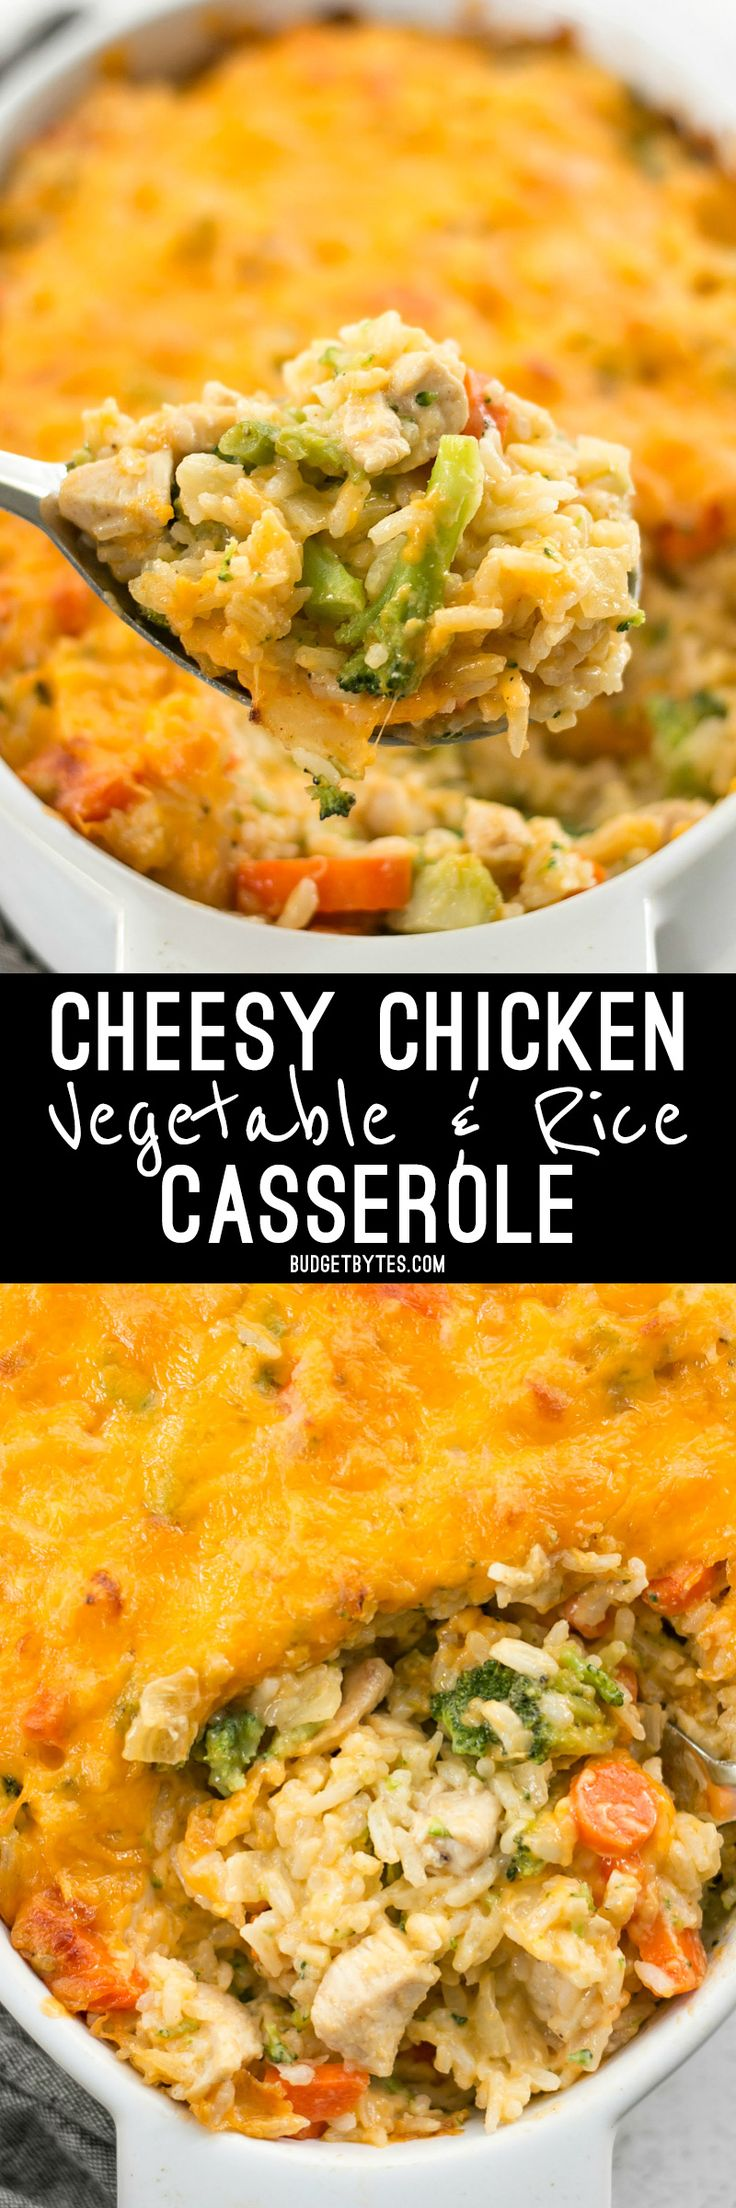 This Cheesy Chicken Vegetable and Rice Casserole is everything your comfort food dreams are made of. BudgetBytes.com